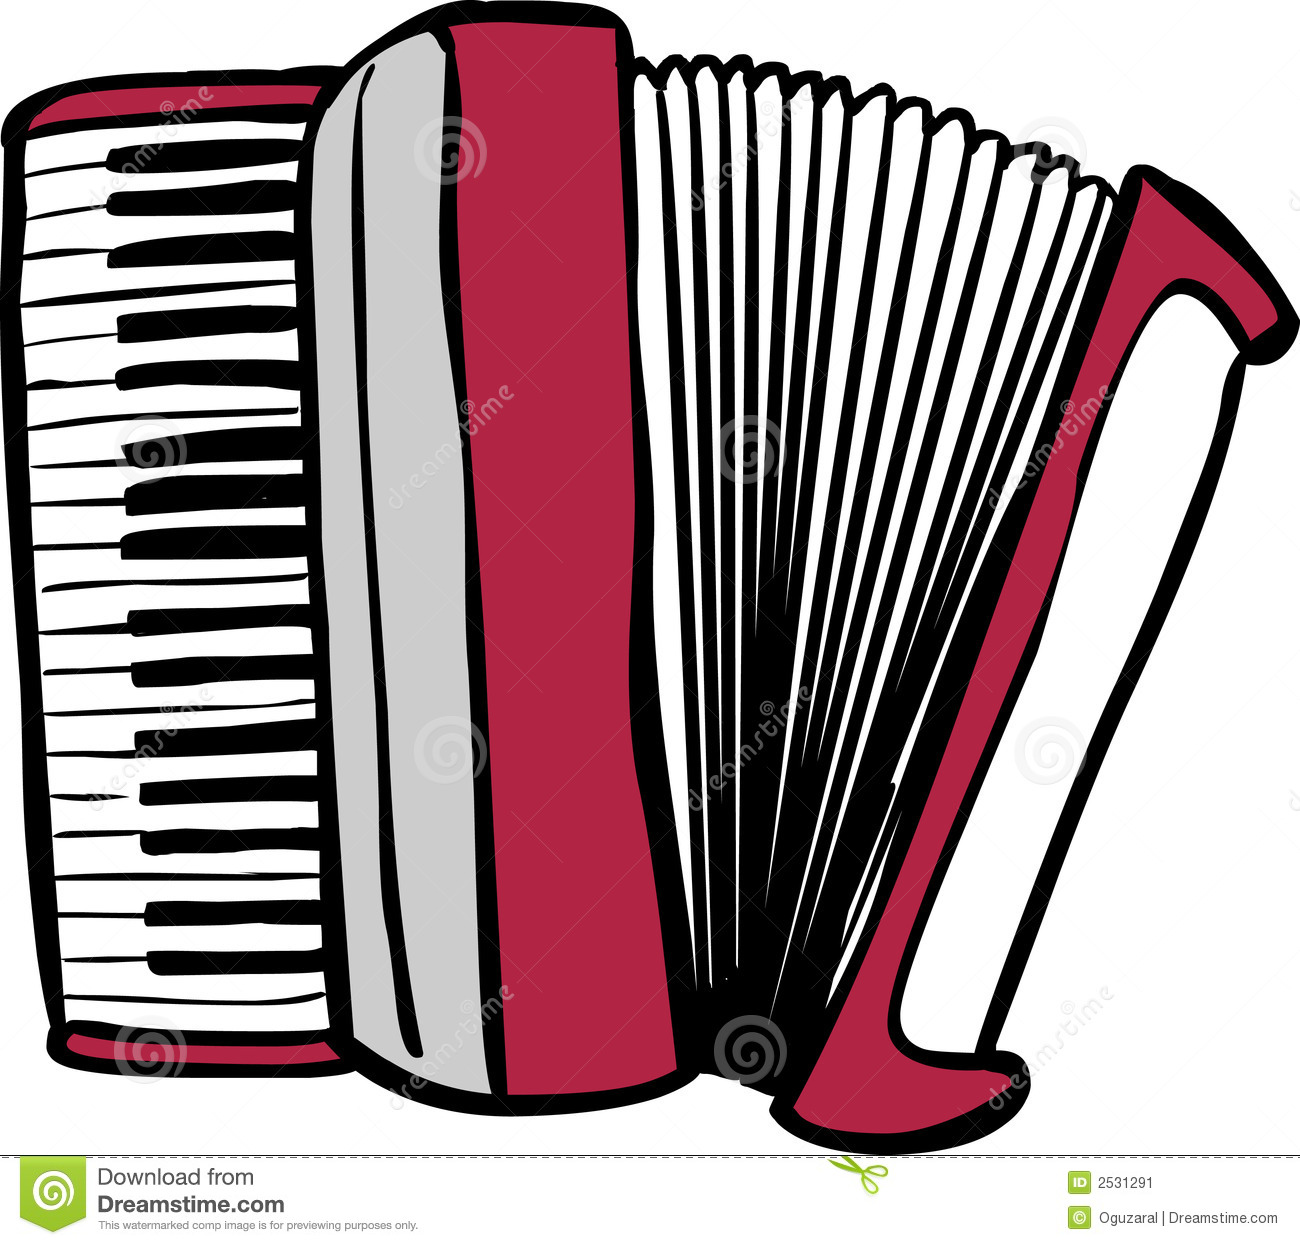 Accordion pictures clipart clip art library library Accordion | Clipart Panda - Free Clipart Images clip art library library